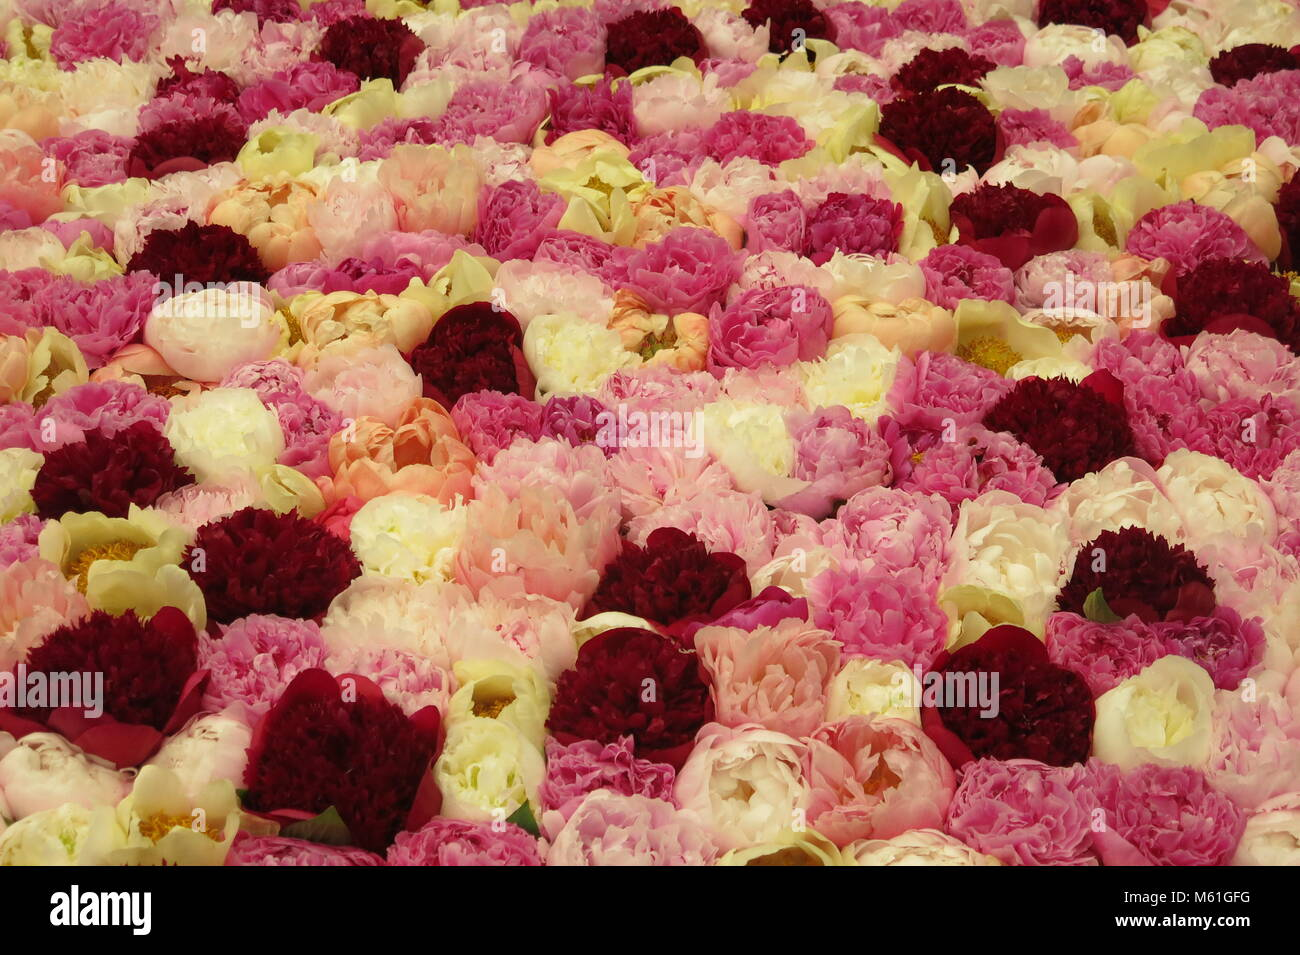 A densely packed display of blowsy, beautiful peonies in multiple hues of pink, cream and crimson at RHS Chelsea - Stock Image